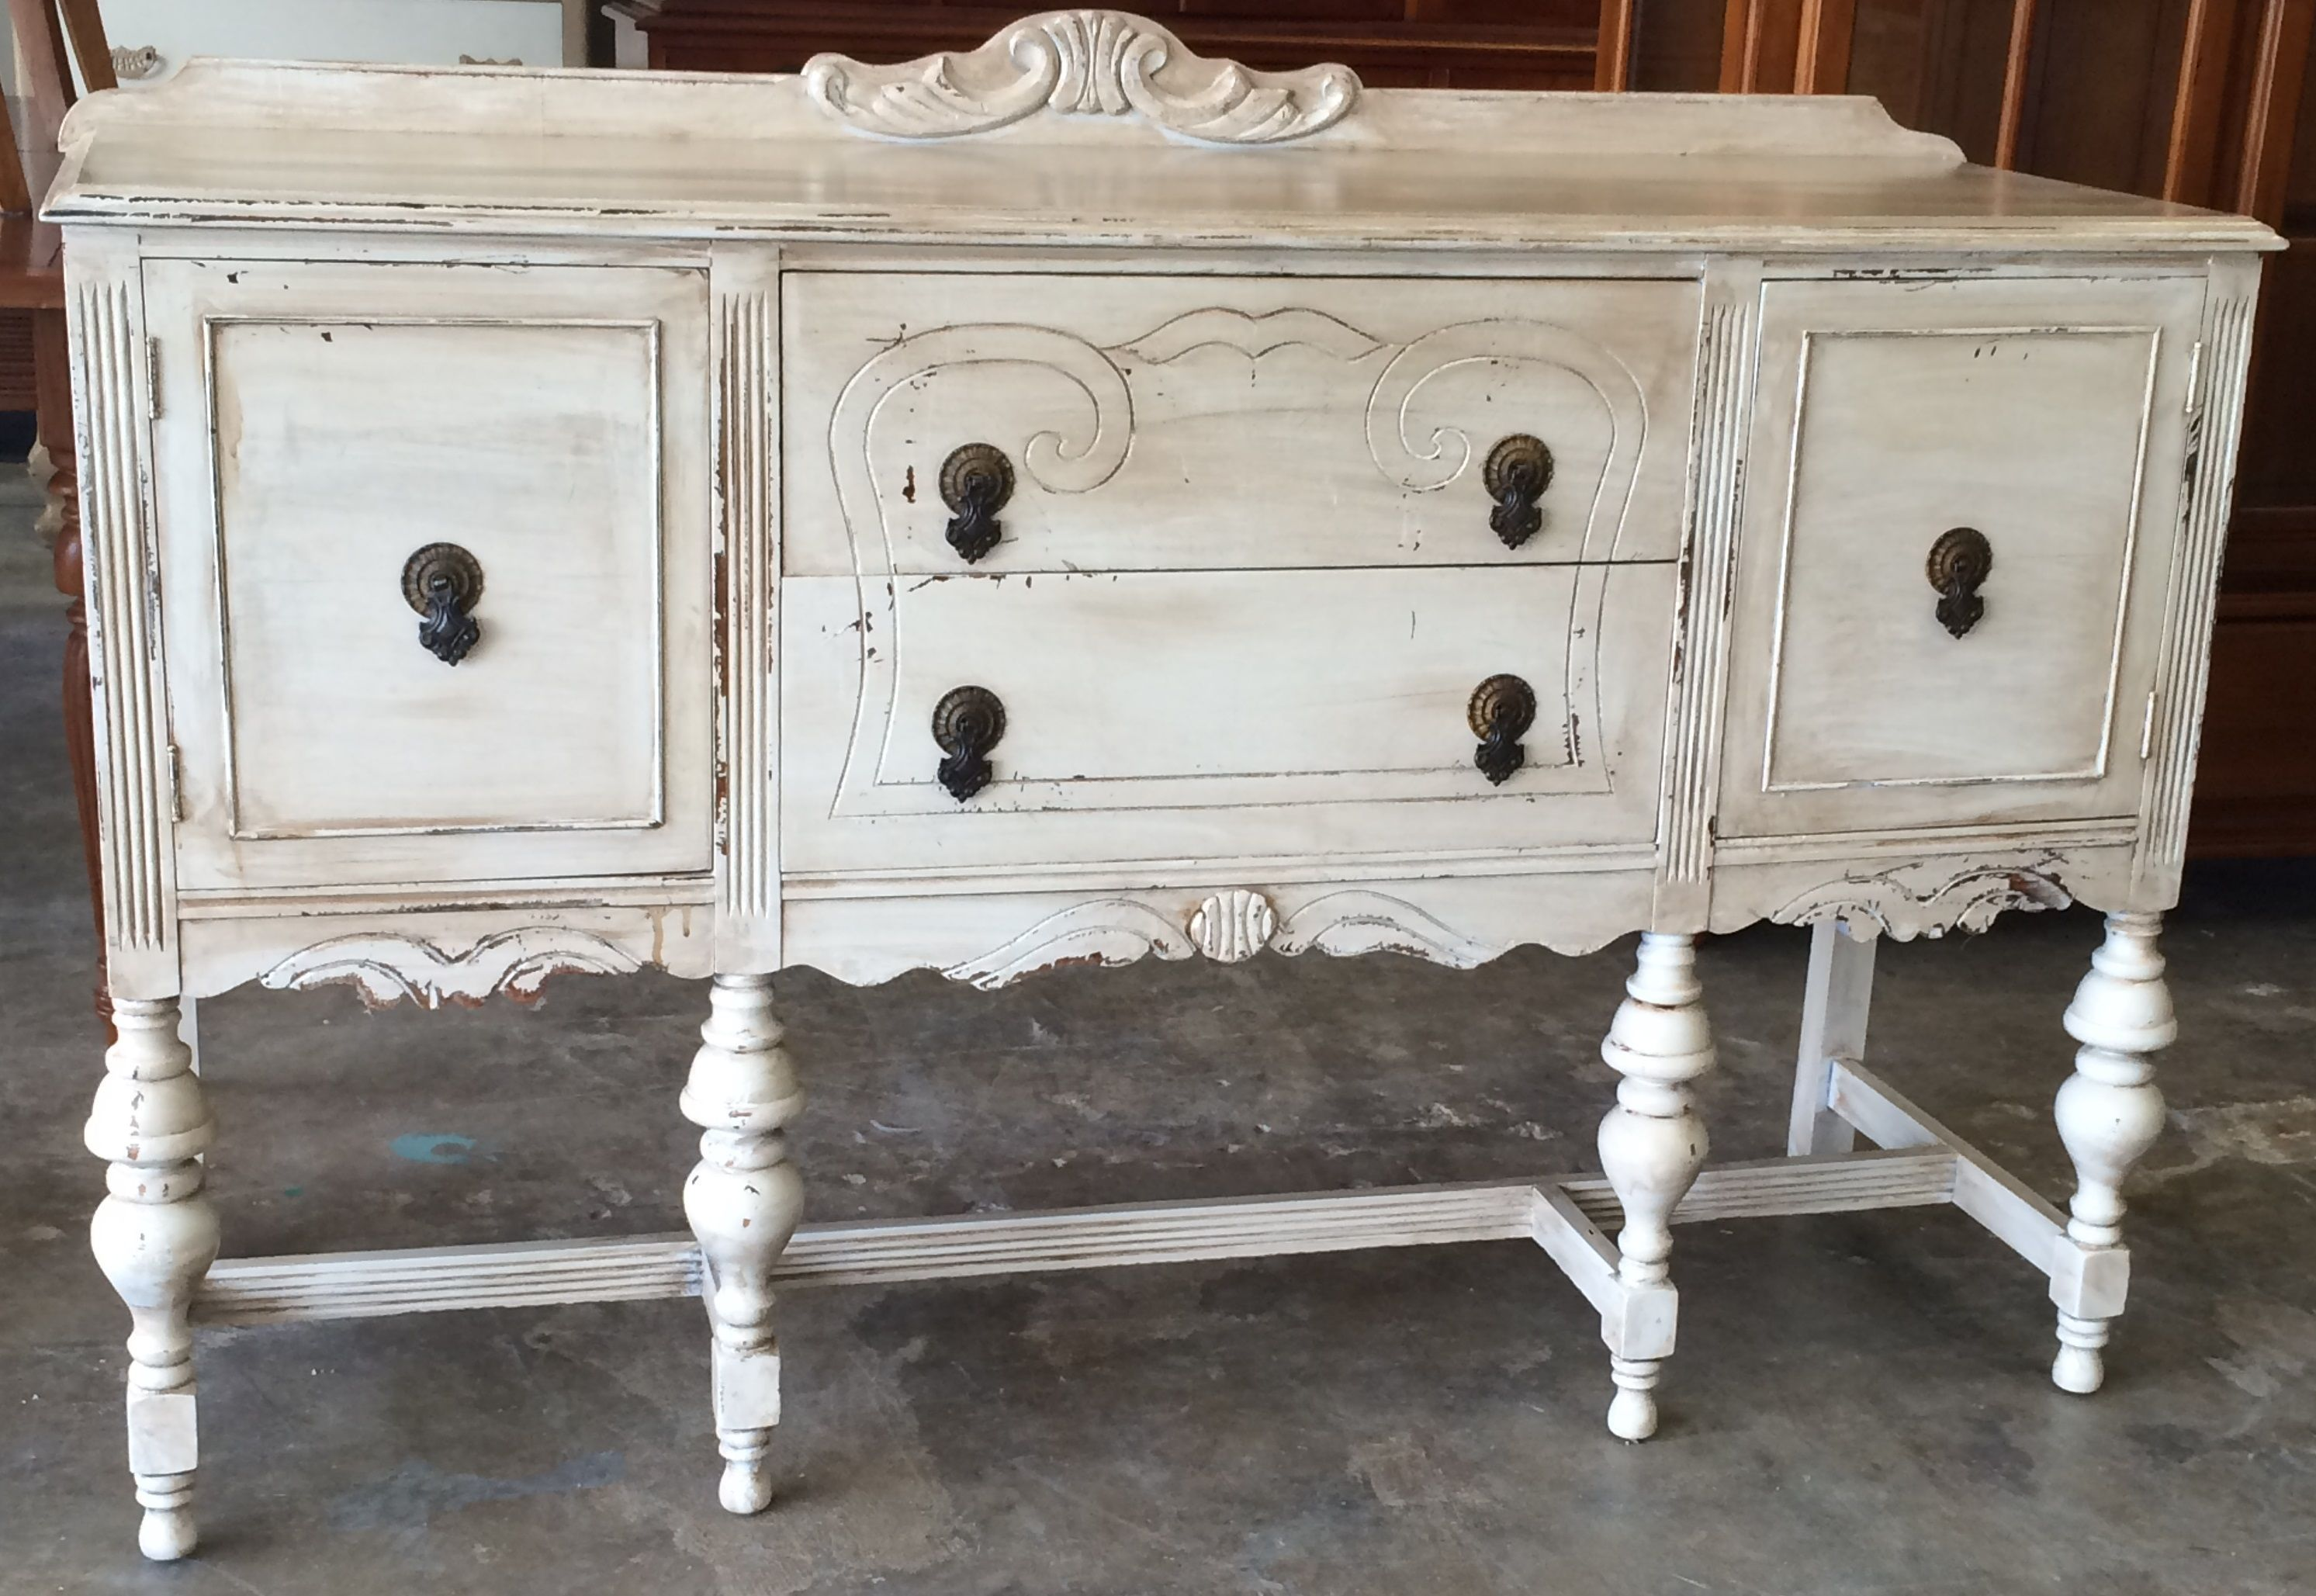 Working On A New Interior Design Project Find Out The Best Mid Century Sideboard And Console Inspira Shabby Chic Buffet Shabby Chic Dresser Furniture Makeover